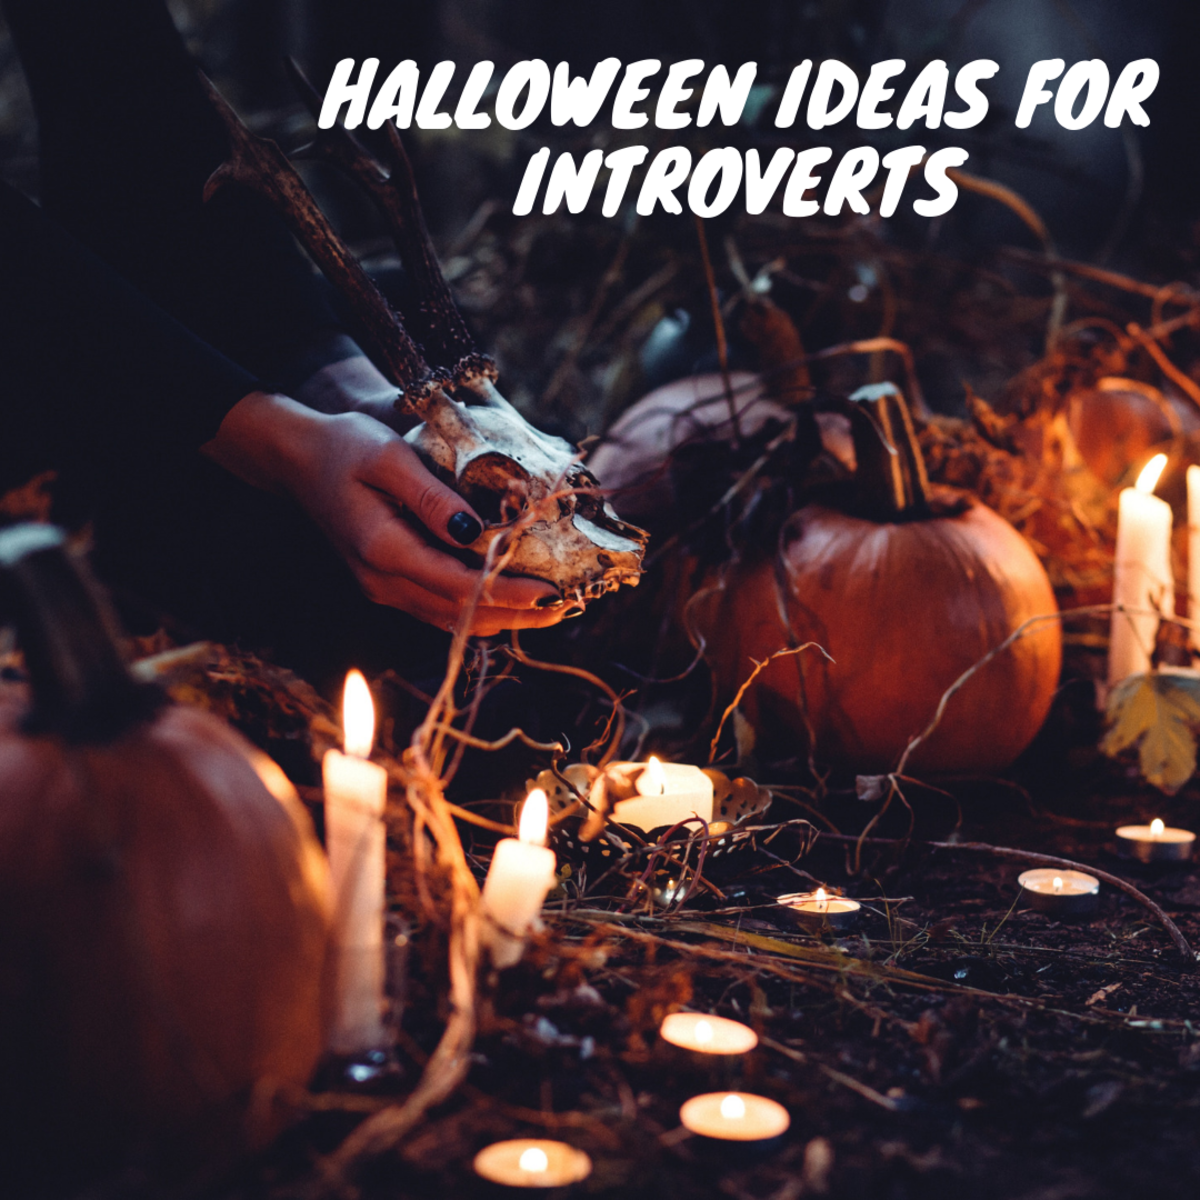 Spooktober: Halloween Ideas for Introverts